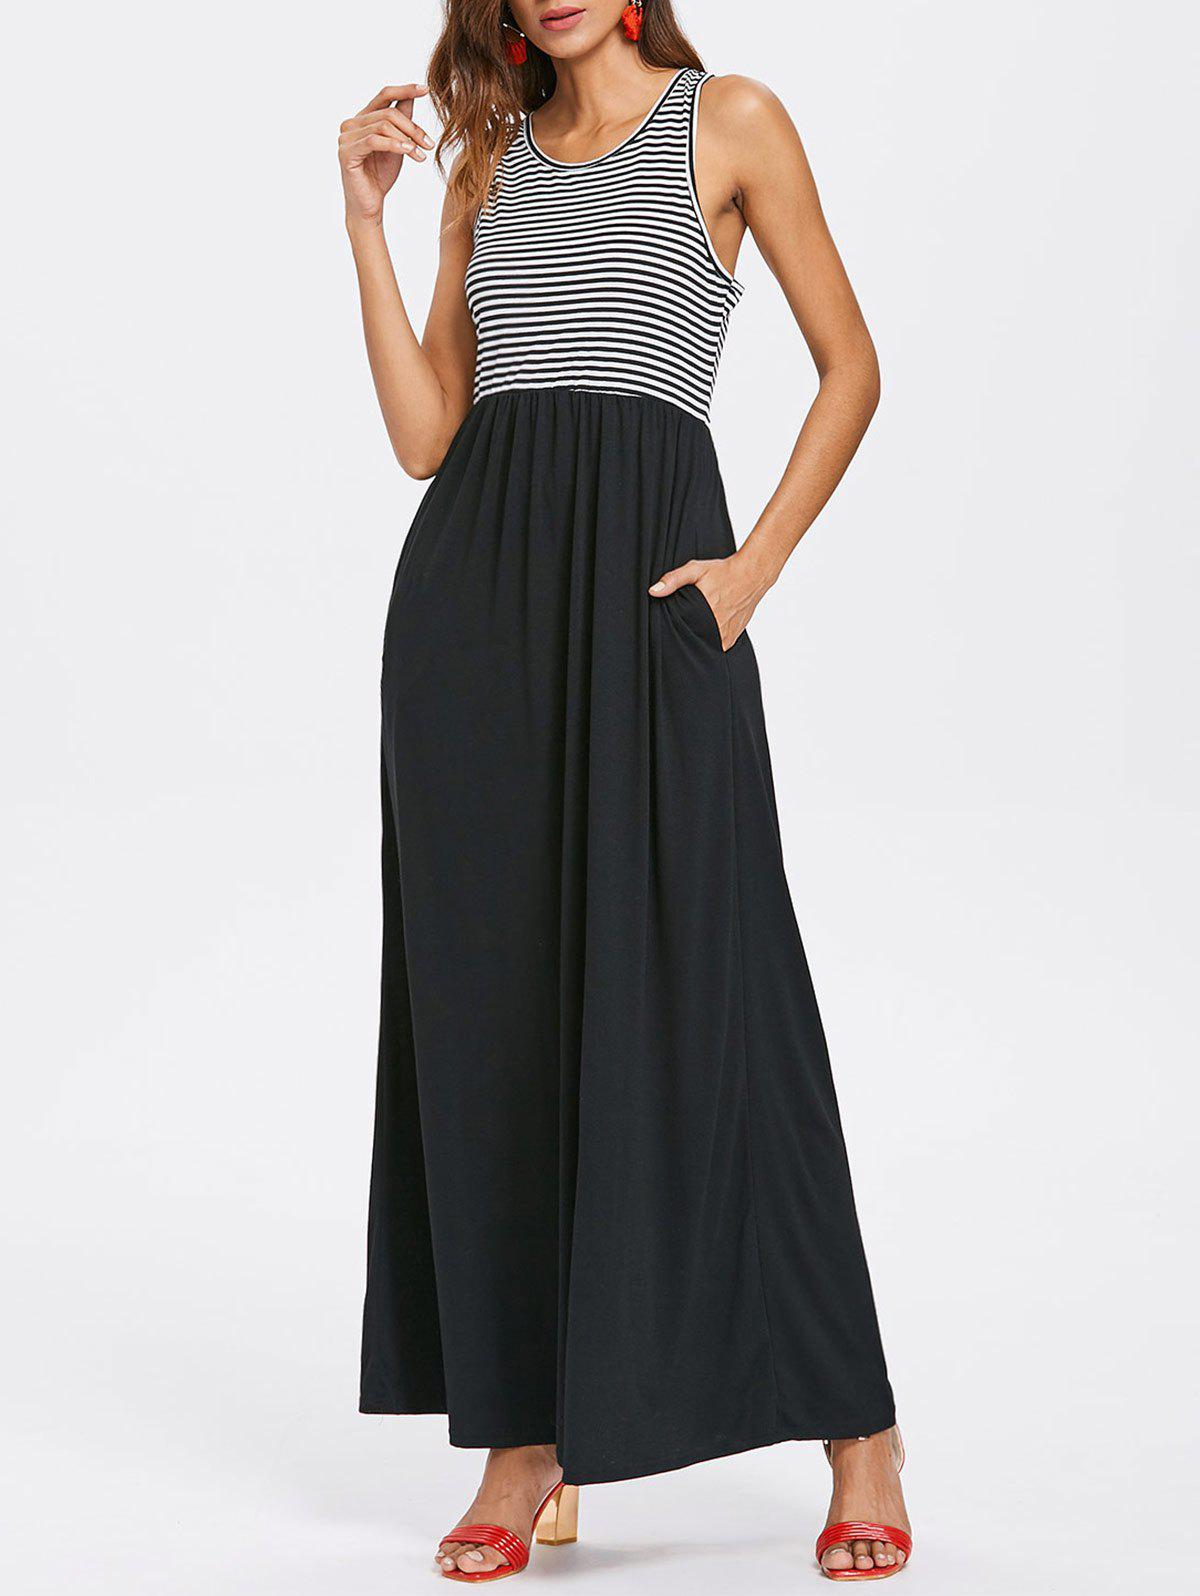 Buy Striped Panel Sleeveless Floor Length Dress